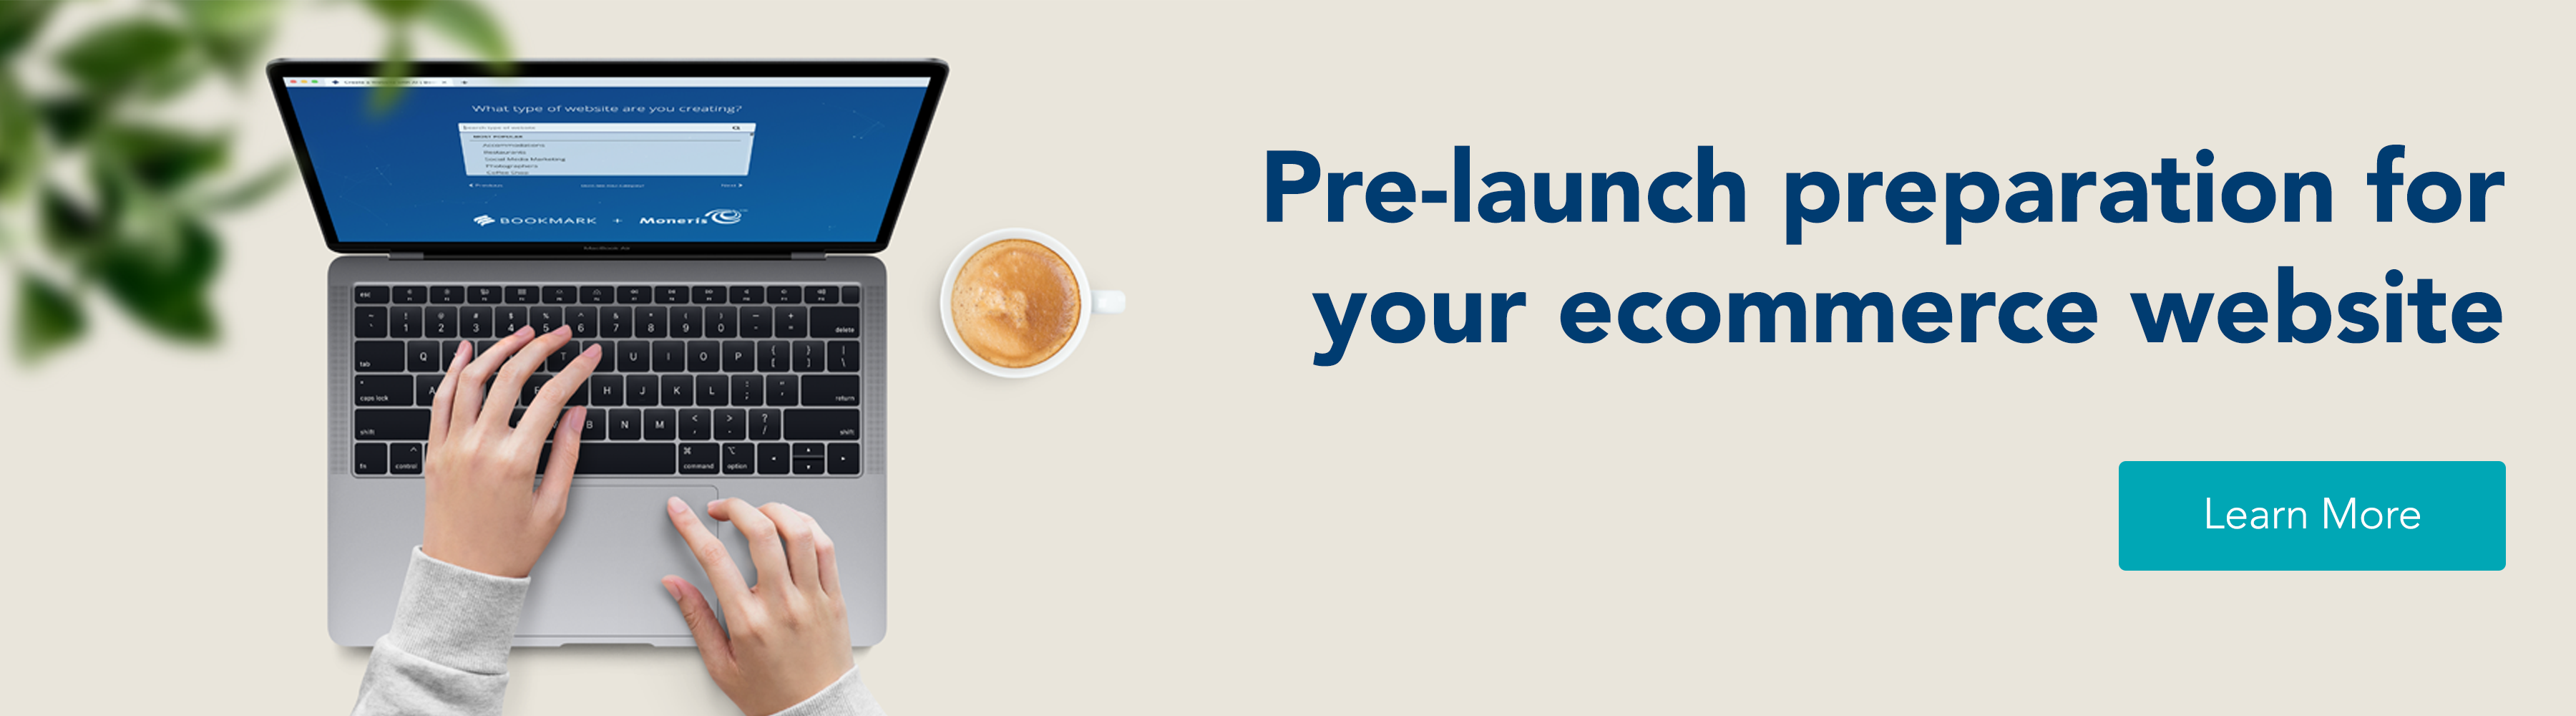 Start Selling Online: Pre-launch preparation for your ecommerce website